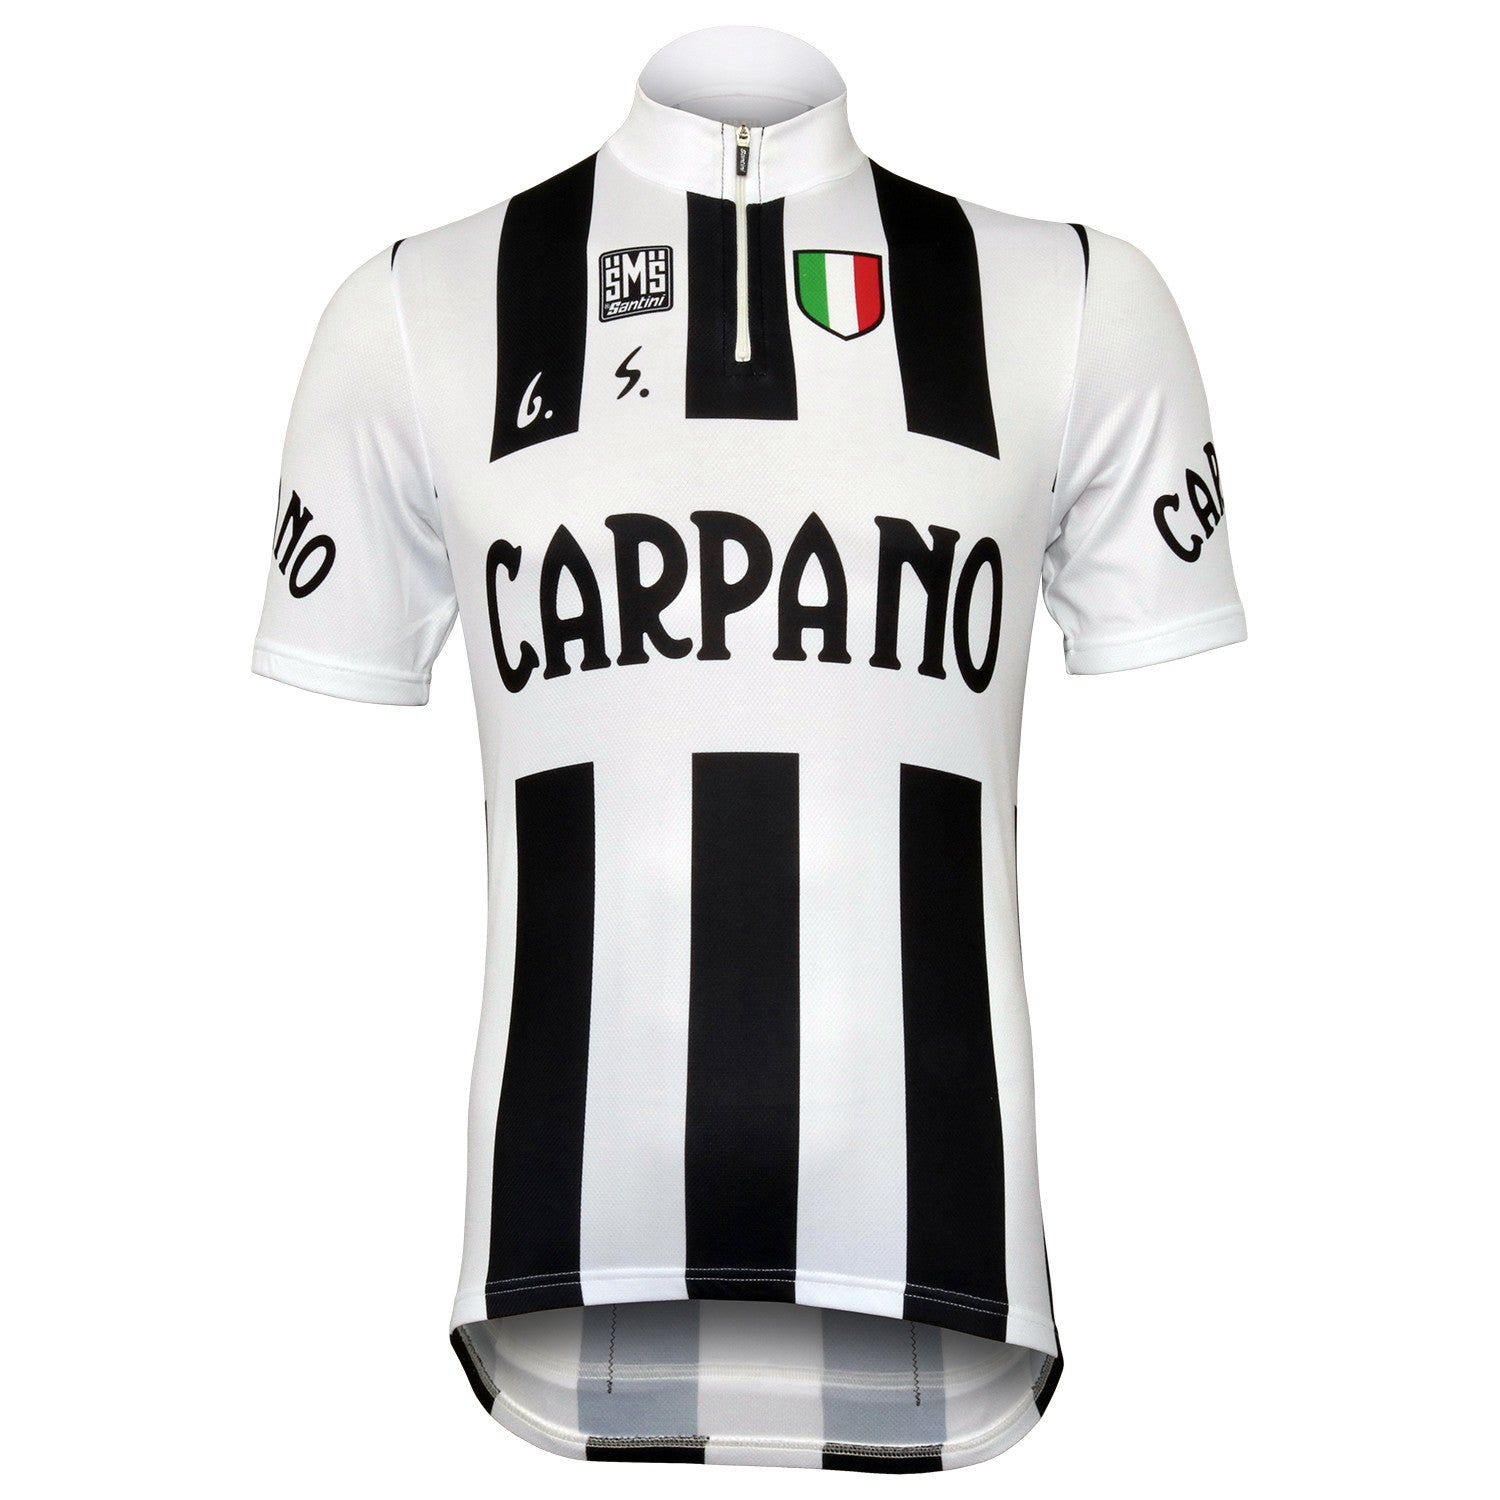 new arrivals a8cd5 1354b Retro Cycling Jerseys | Vintage | Classic Jerseys | Prendas ...